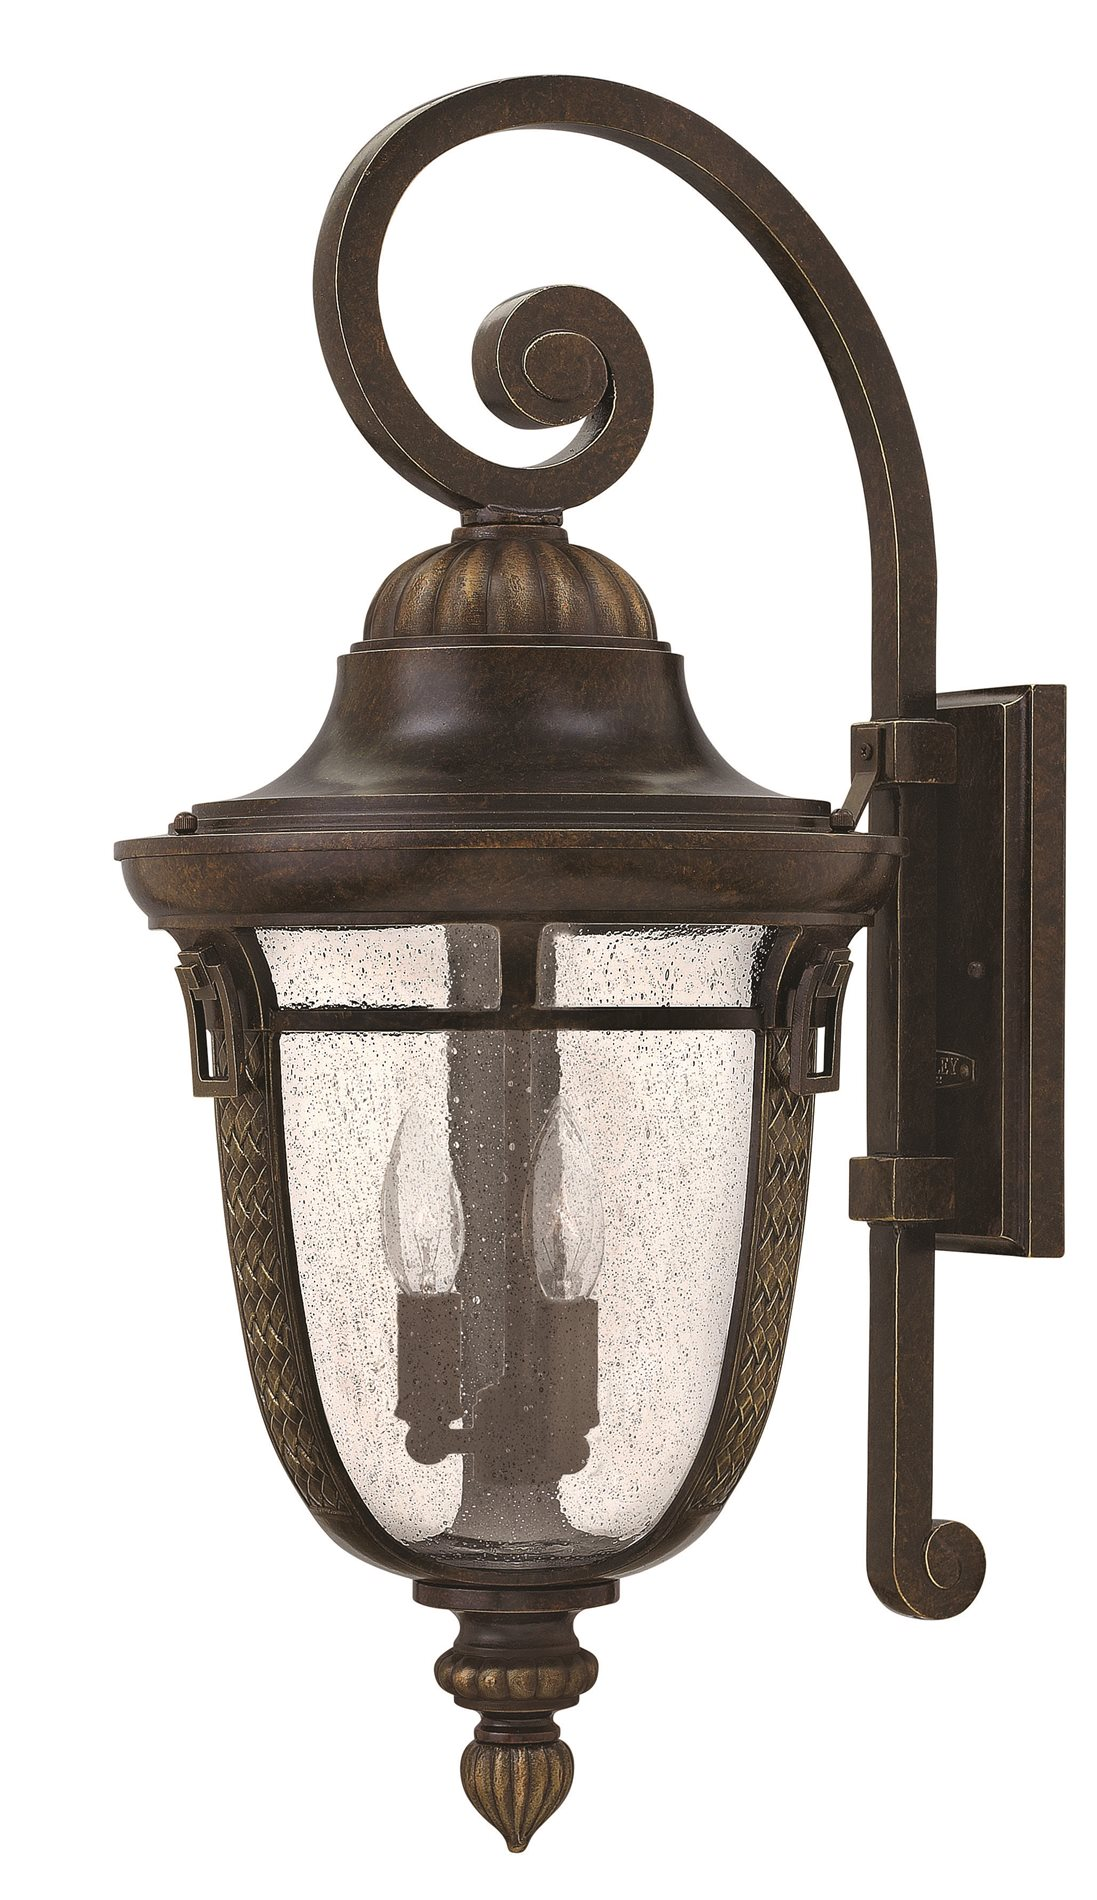 Hinkley lighting 2905rb key west large outdoor wall sconce for Outdoor sconce lighting fixtures